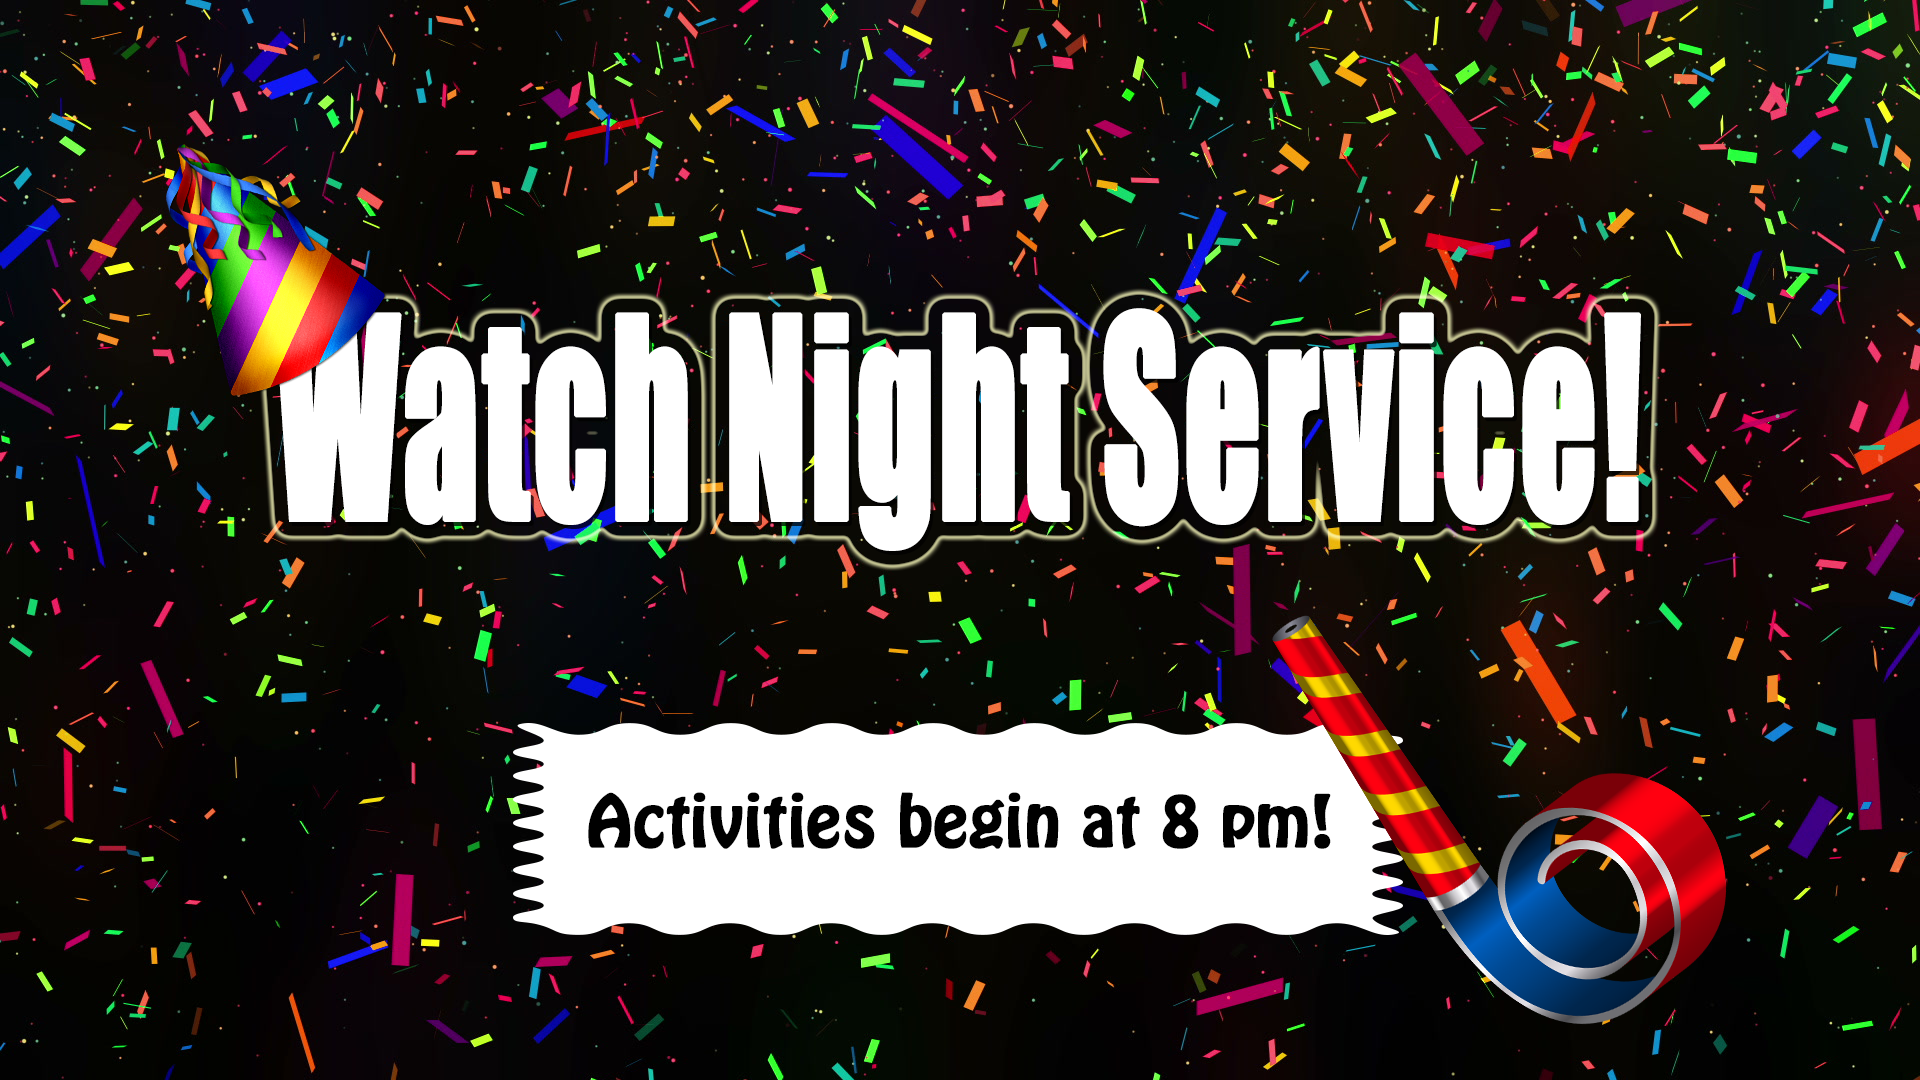 Our watchnight service so filled with fun. We had a great time and wonderful food. There were great  games and fellowship!